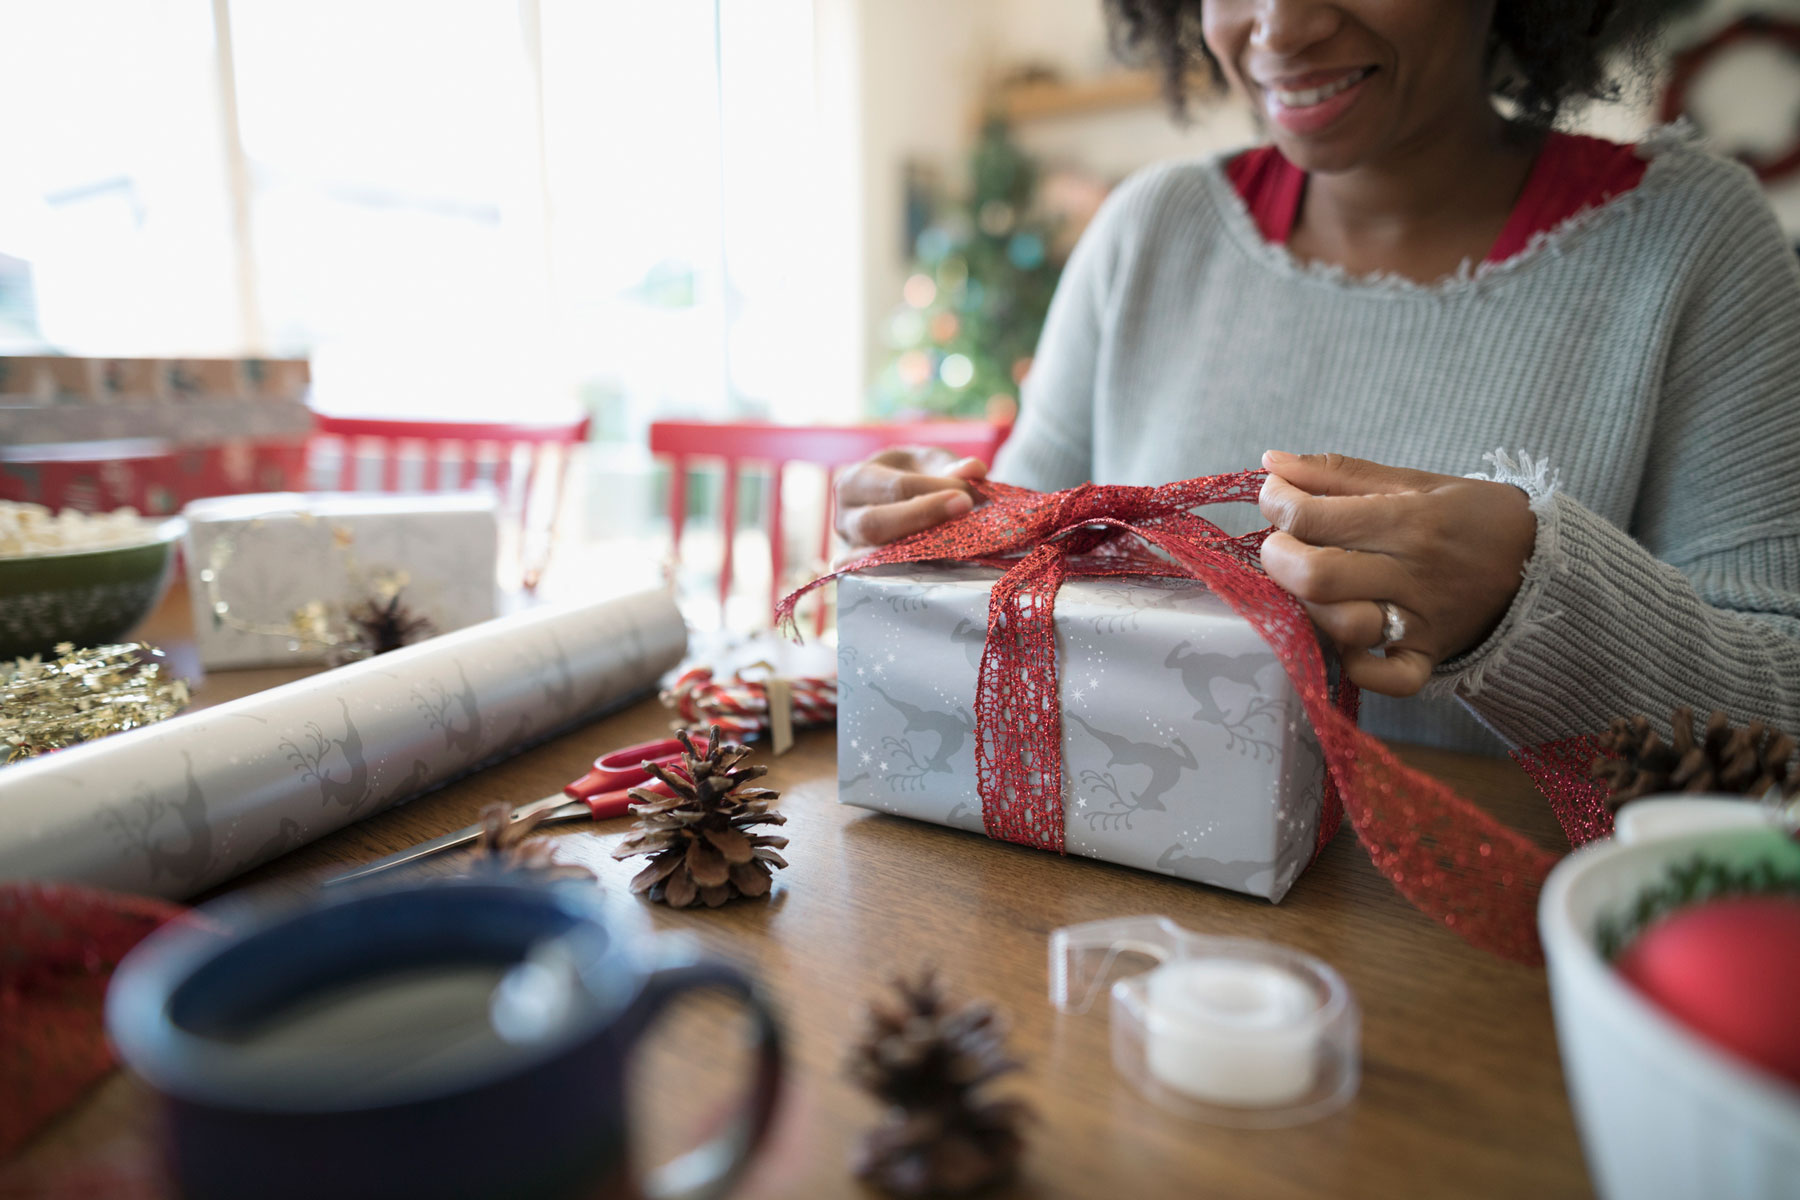 Woman wrapping gifts - gift wrapping mistakes